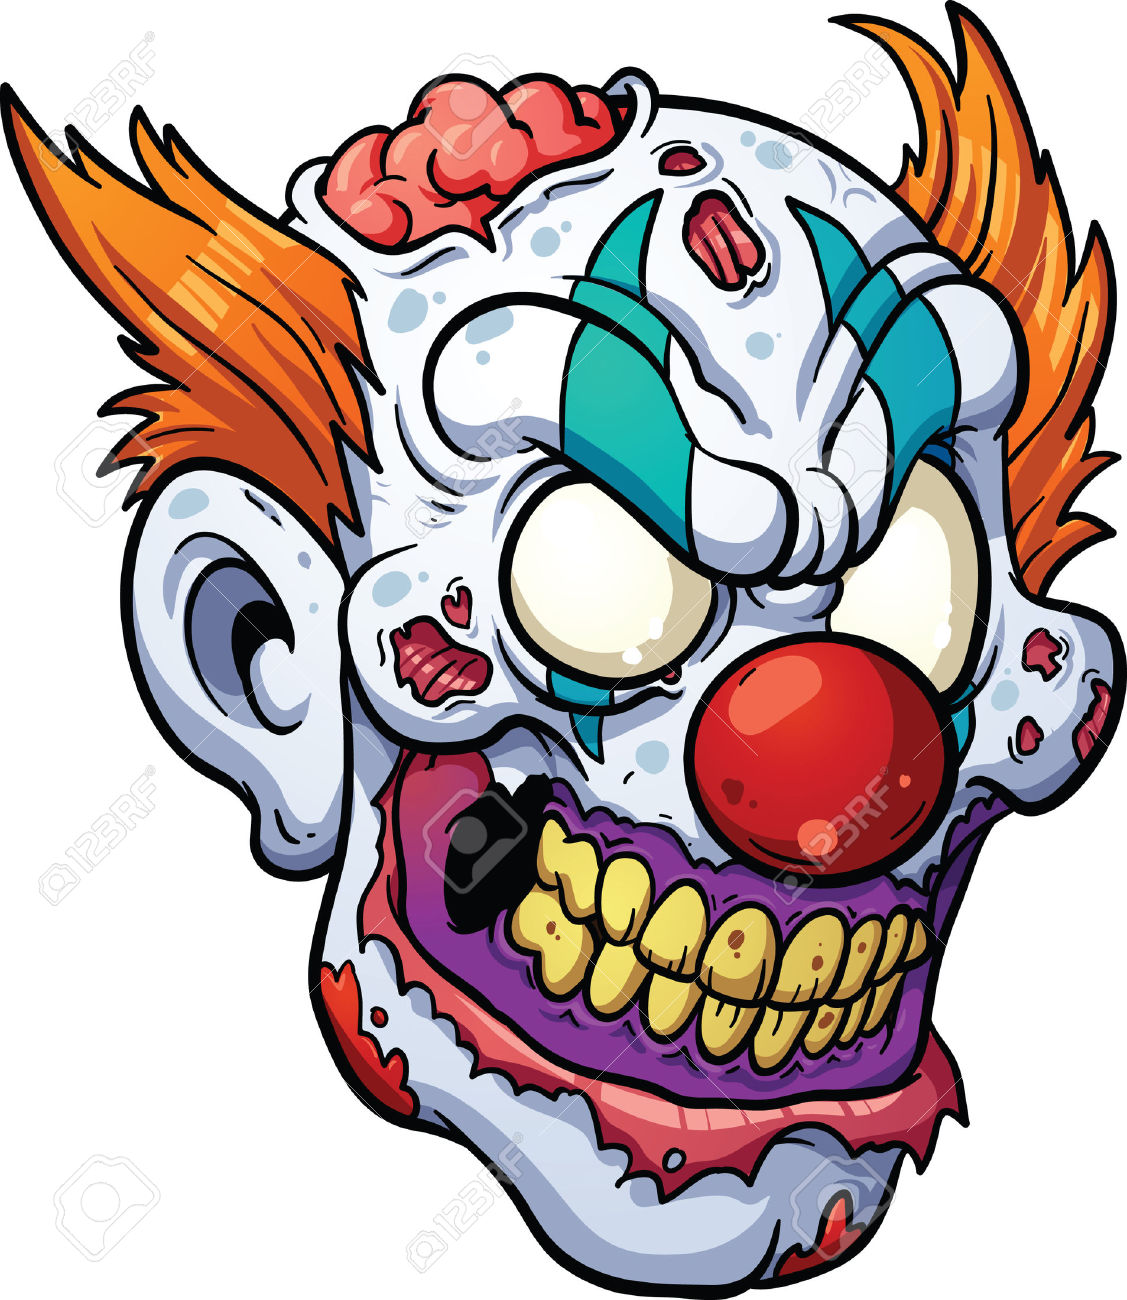 76+ Scary Clown Clipart.